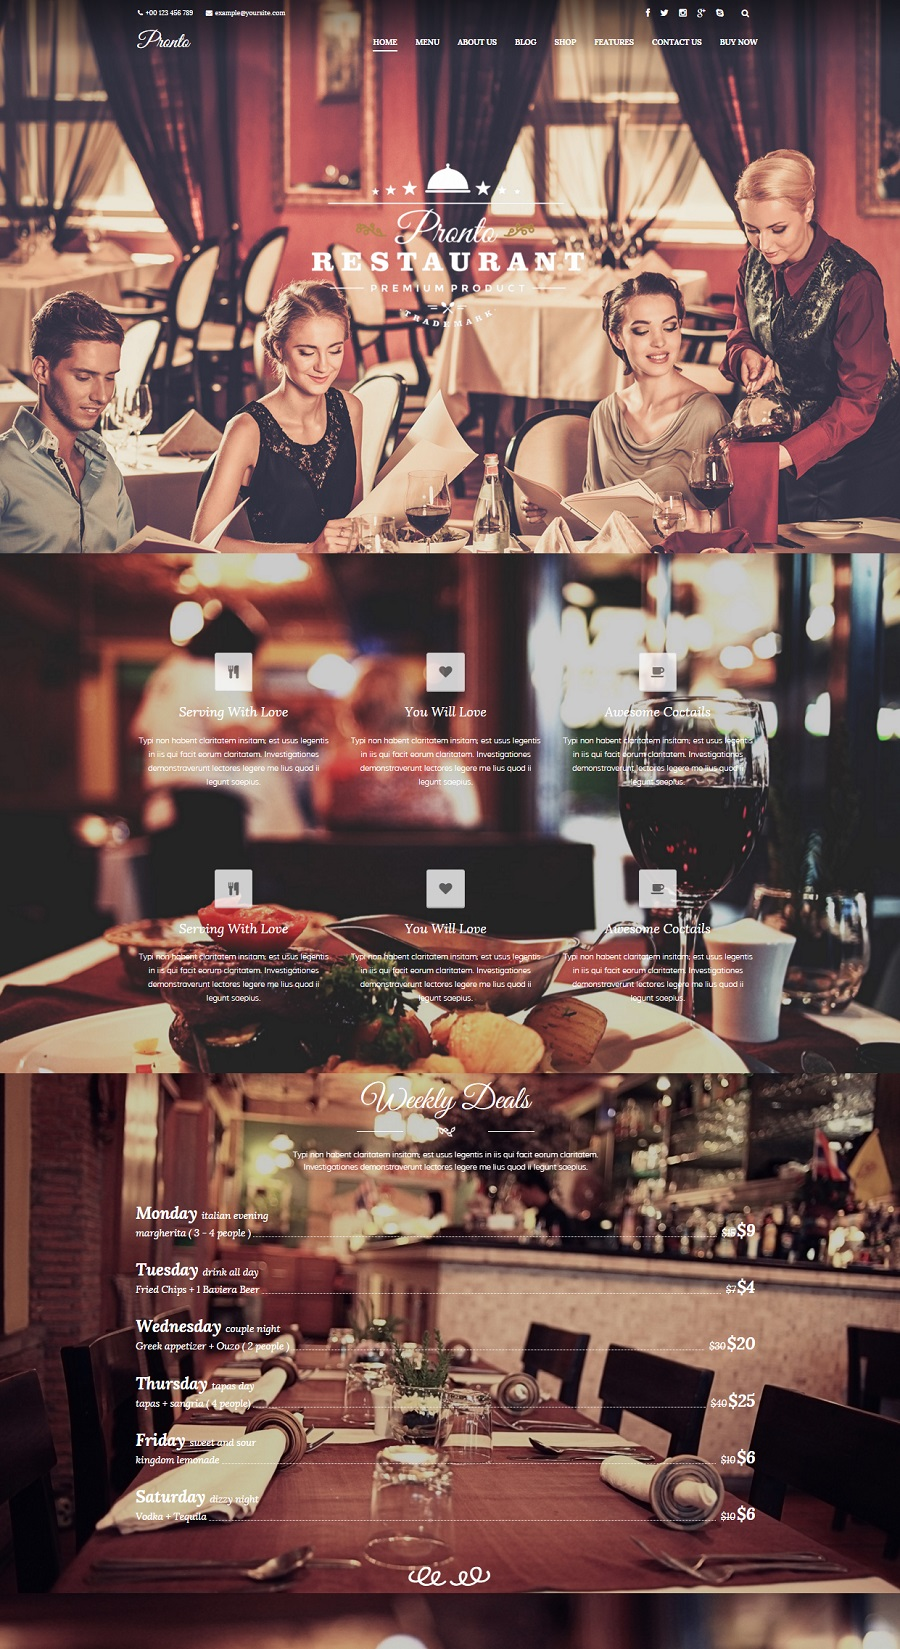 pronto restaurant wordpress theme